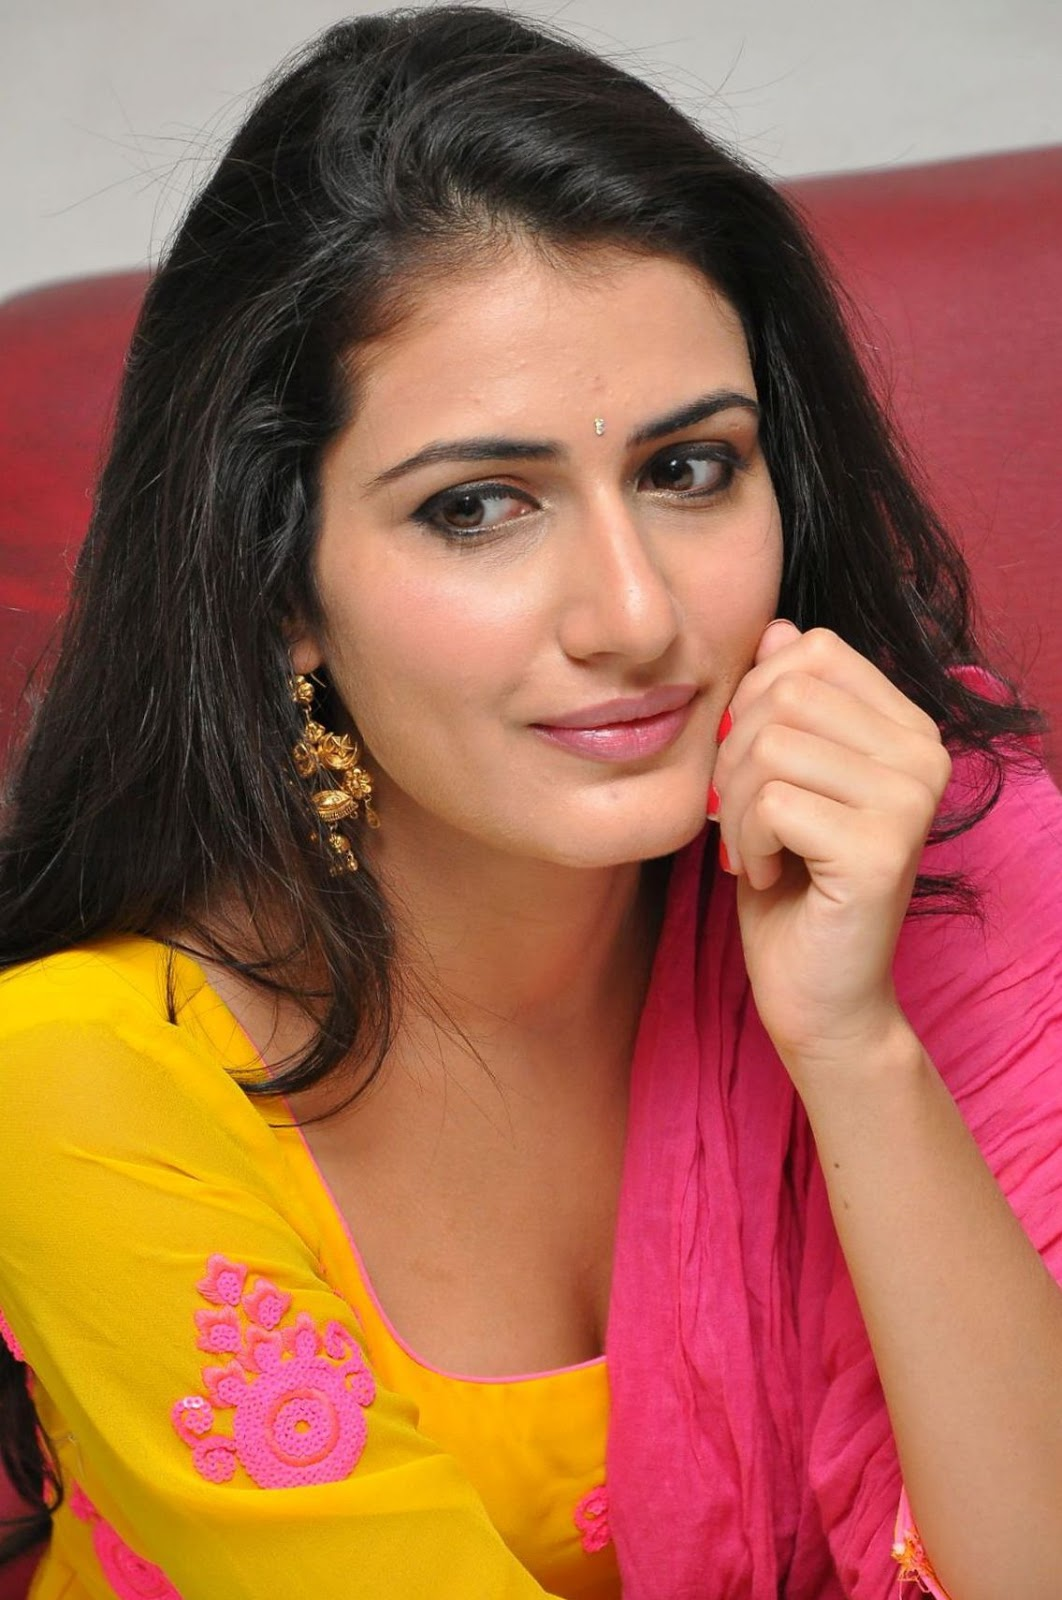 actress sana telugu heroine south film indian acts mainly appeared advertisements several career films started she